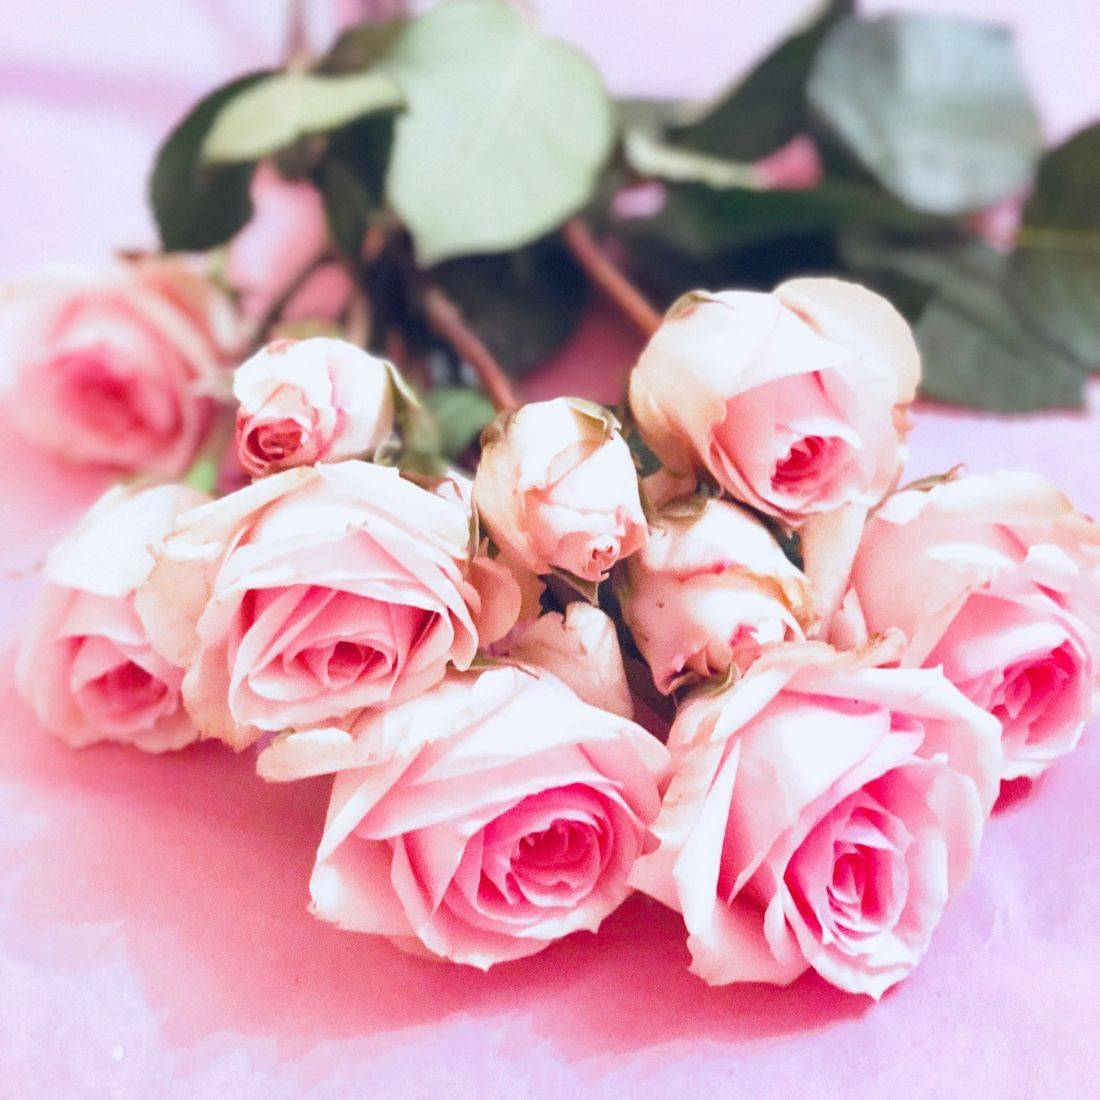 Rose Water Uses Benefits Skincare